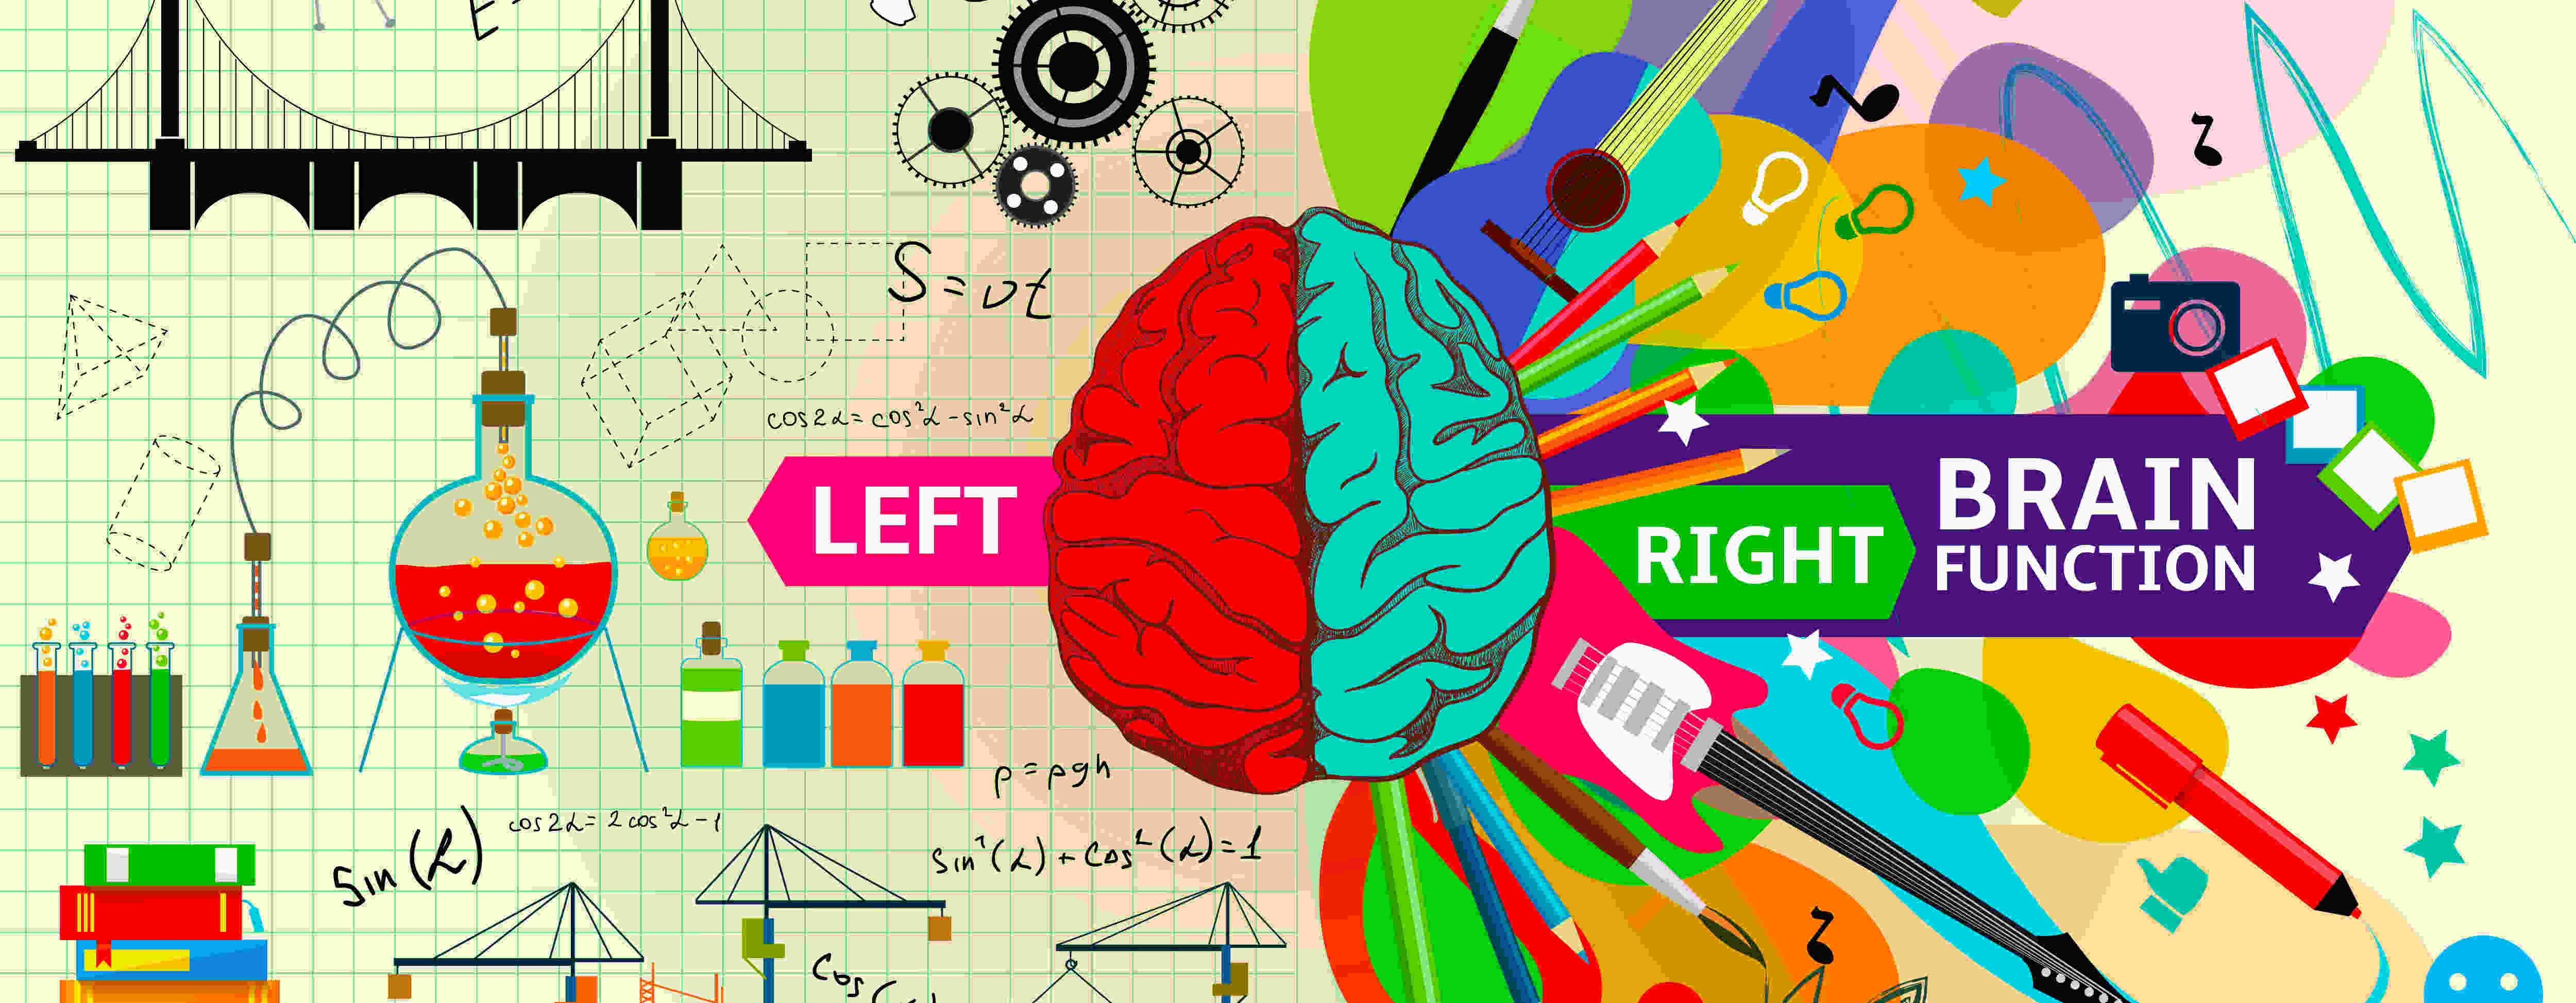 Digitally created image showing difference between left and right side of the brain